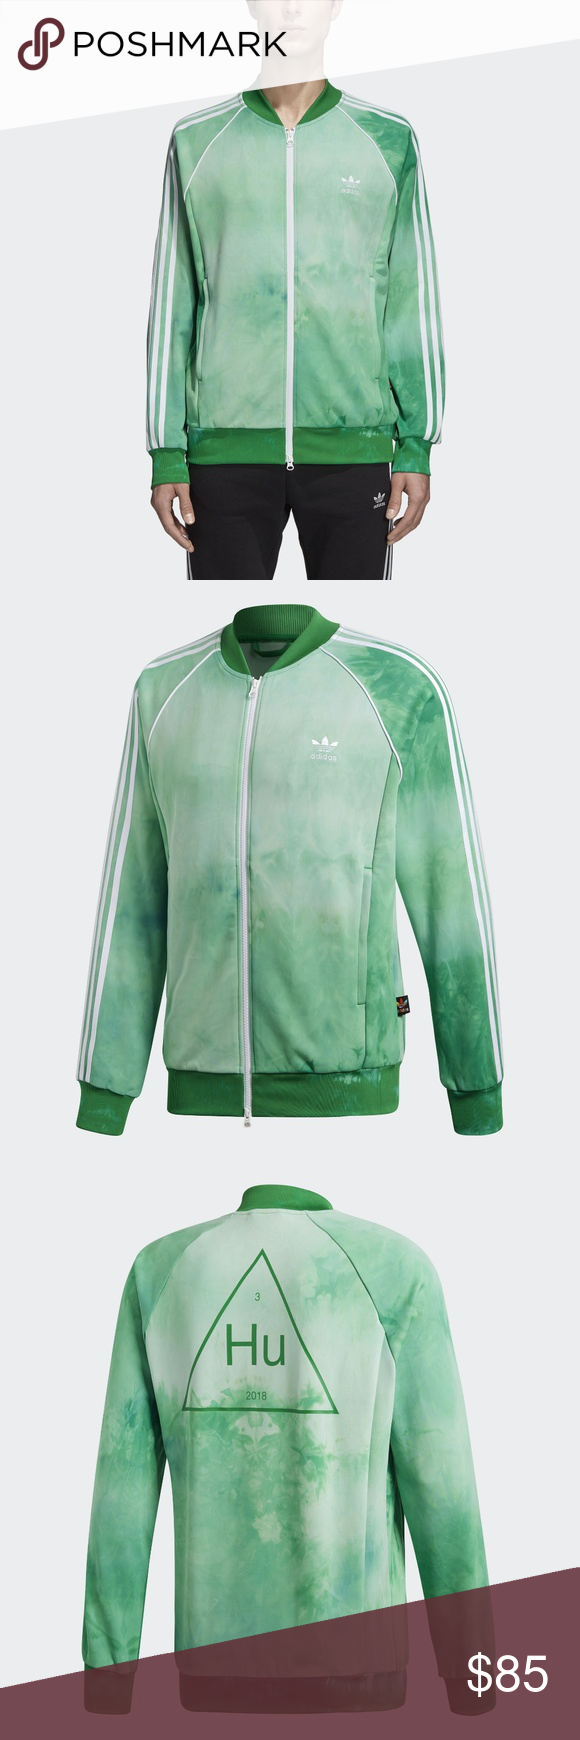 ef84ad8002e30 adidas Green Track Jacket The Holi Festival is the color-splashed ...